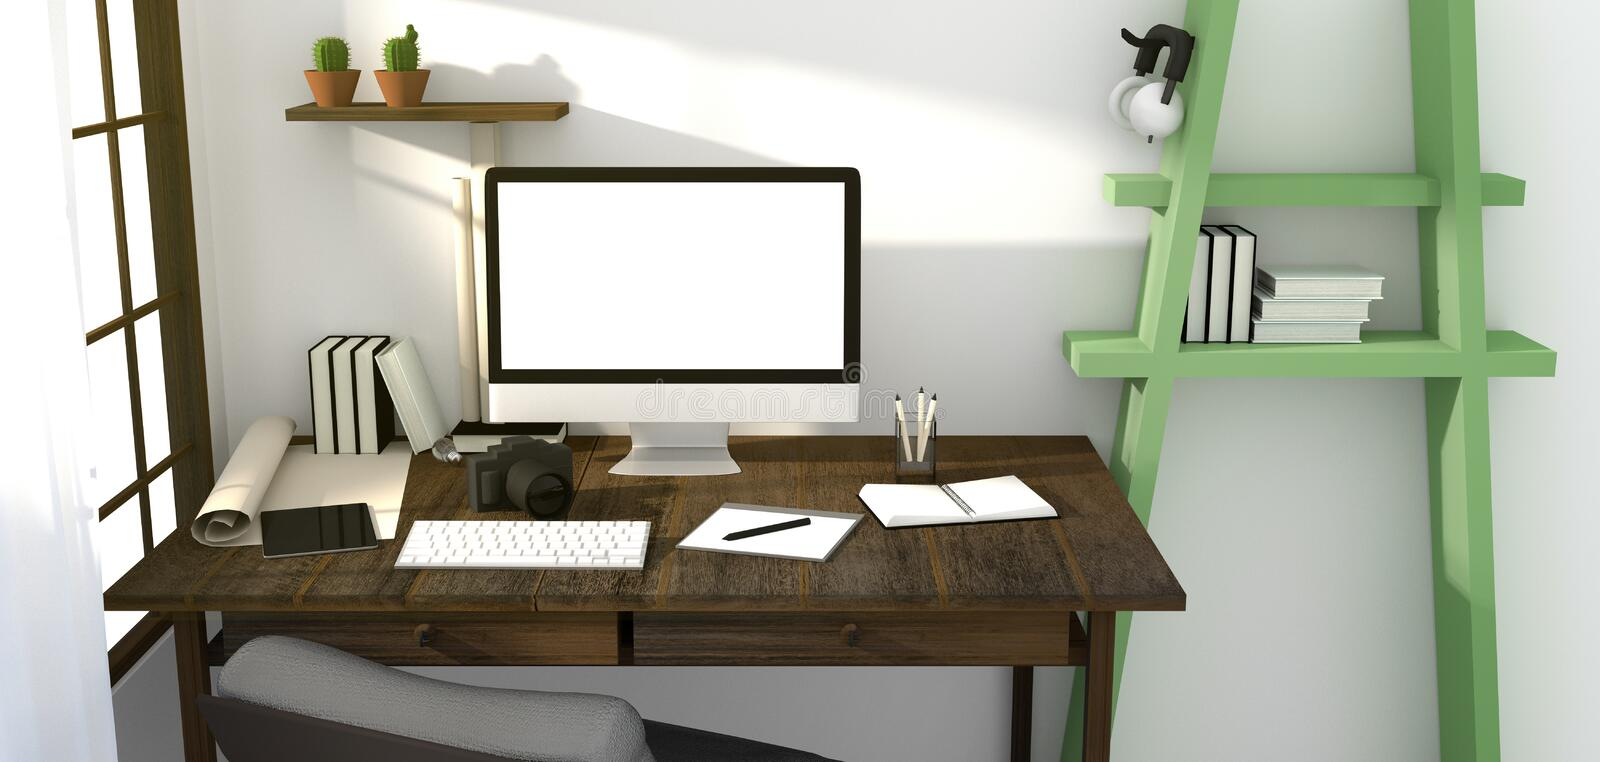 3D Rendering : illustration of modern creative workplace mockup.PC monitor on wooden table.translucent curtain and glass window w. Ith sunrise shining from vector illustration